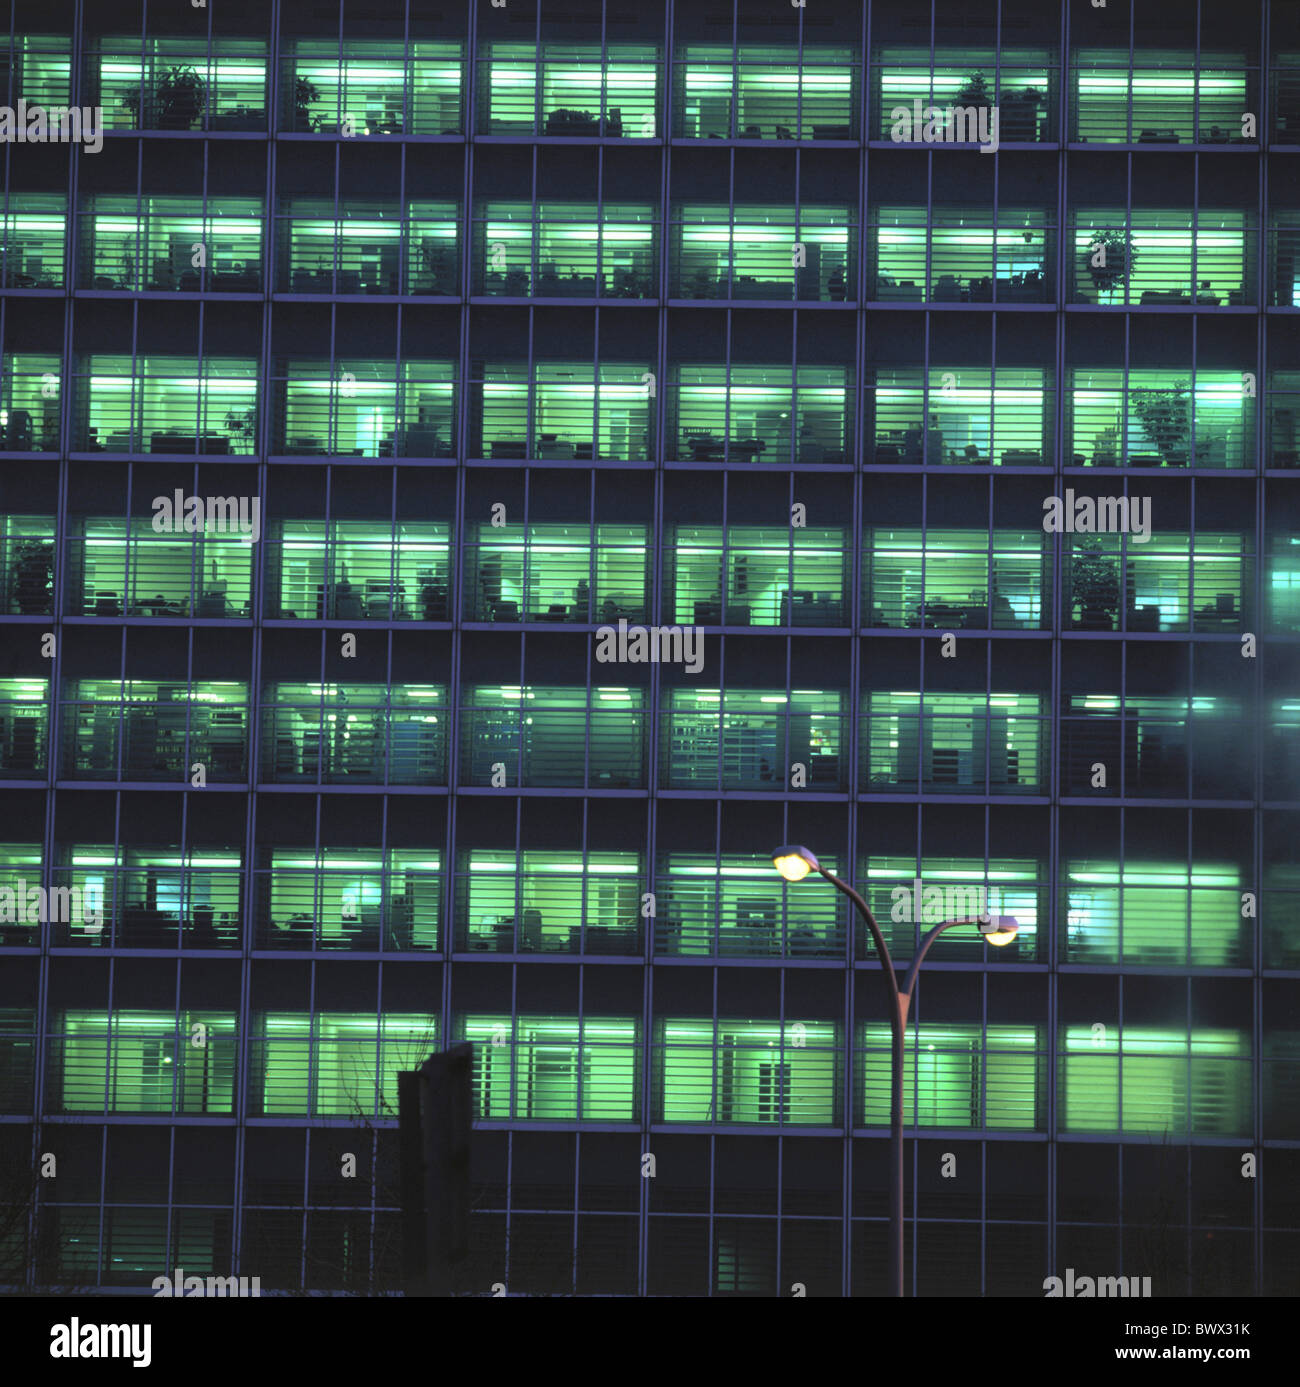 Window at night from outside - Stock Photo Building Construction Night Offices Outside Illuminated Office Facade Window At Night